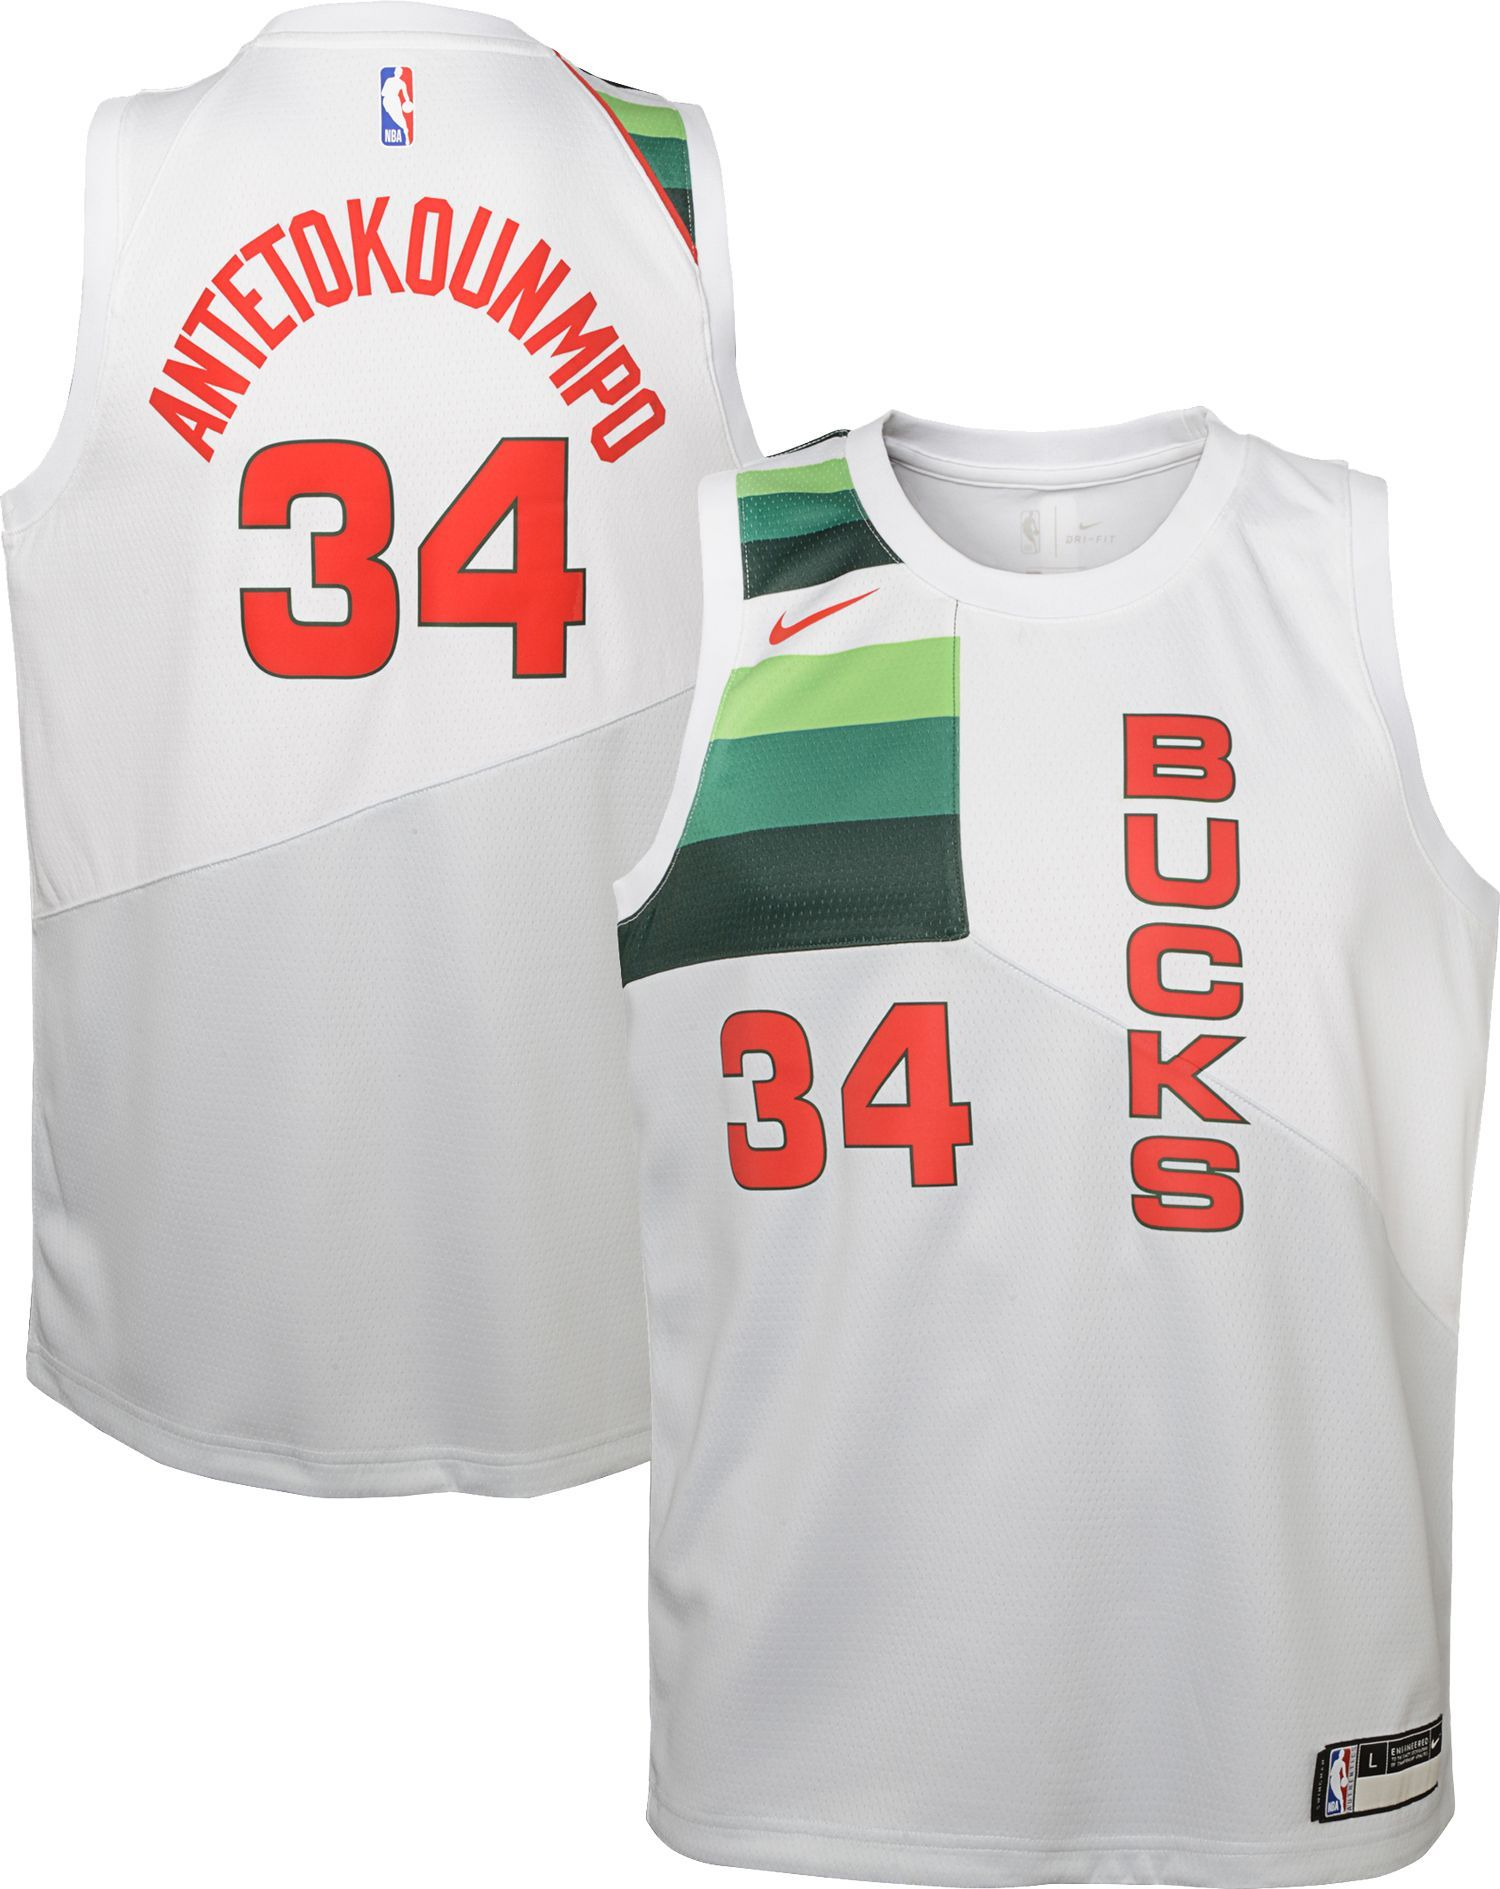 abf7112f755 Nike Youth Milwaukee Bucks Giannis Antetokounmpo Dri-FIT Earned Edition  Swingman Jersey, Size: Medium, White